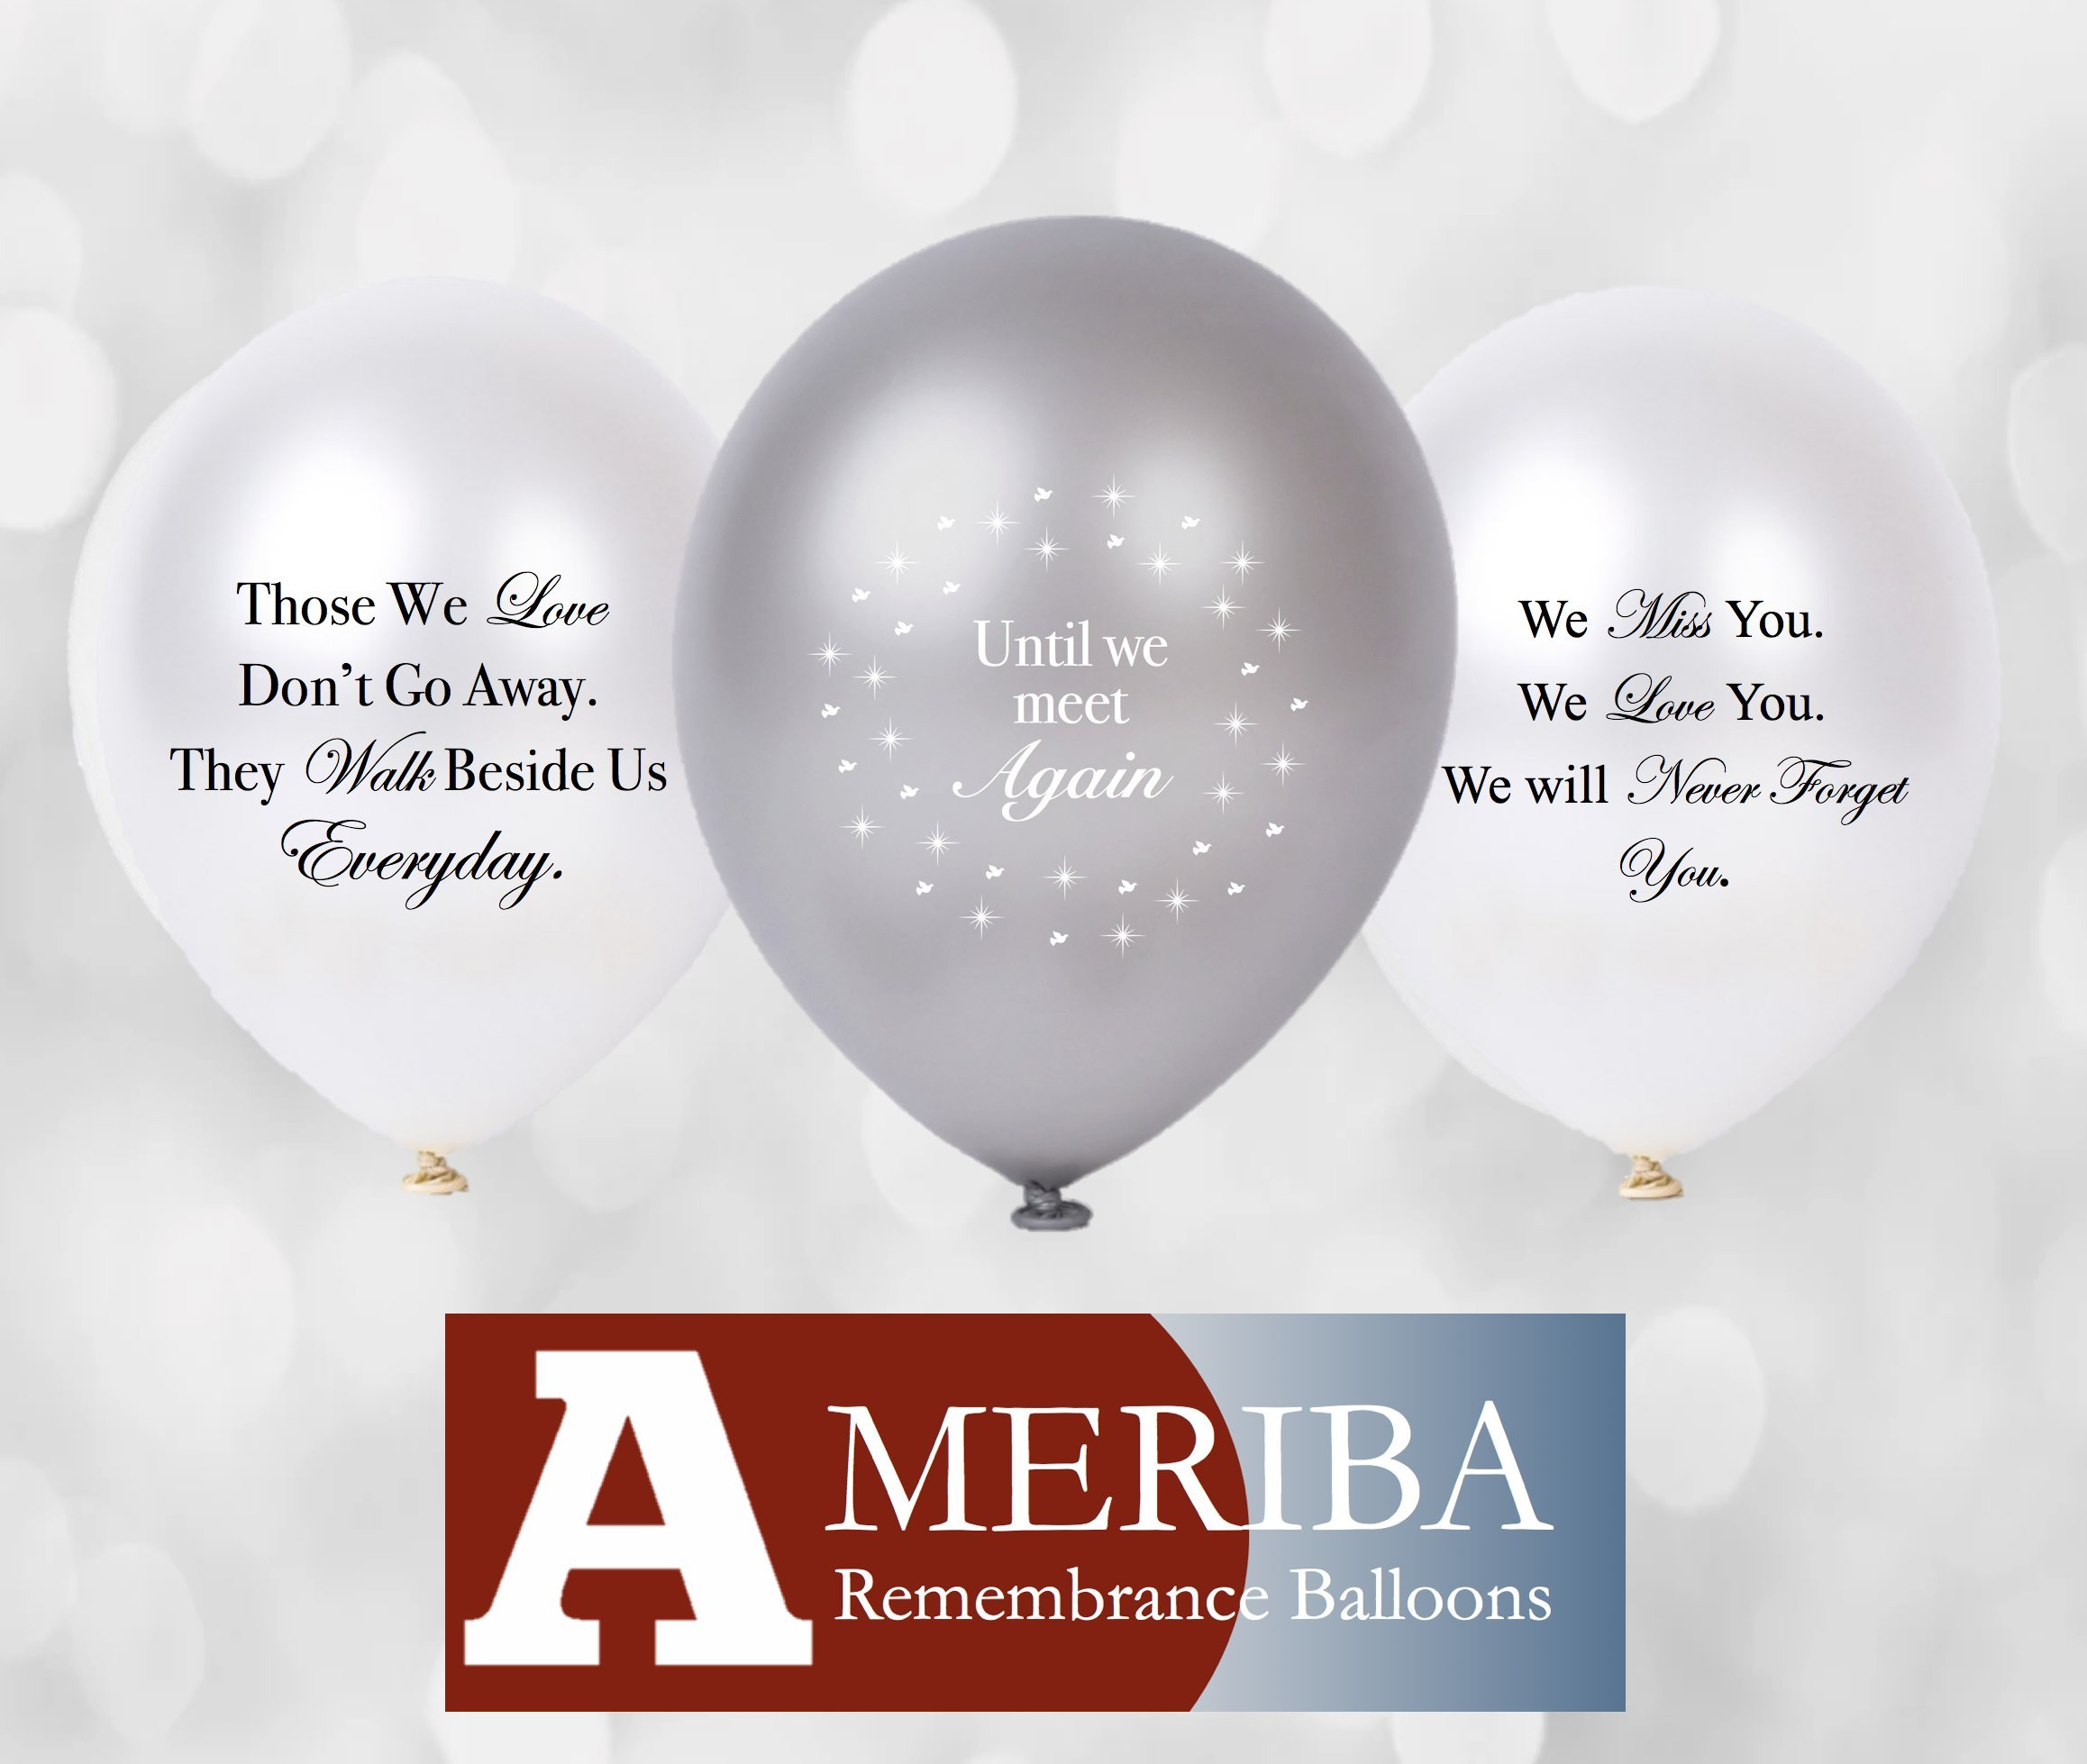 Biodegradable Remembrance Balloons: 30pc White & Silver Personalizable Funeral Balloons for Balloon Releases & Sympathy Gifts | Created/Sold by AMERIBA, a USA Company (White & Silver Variety)